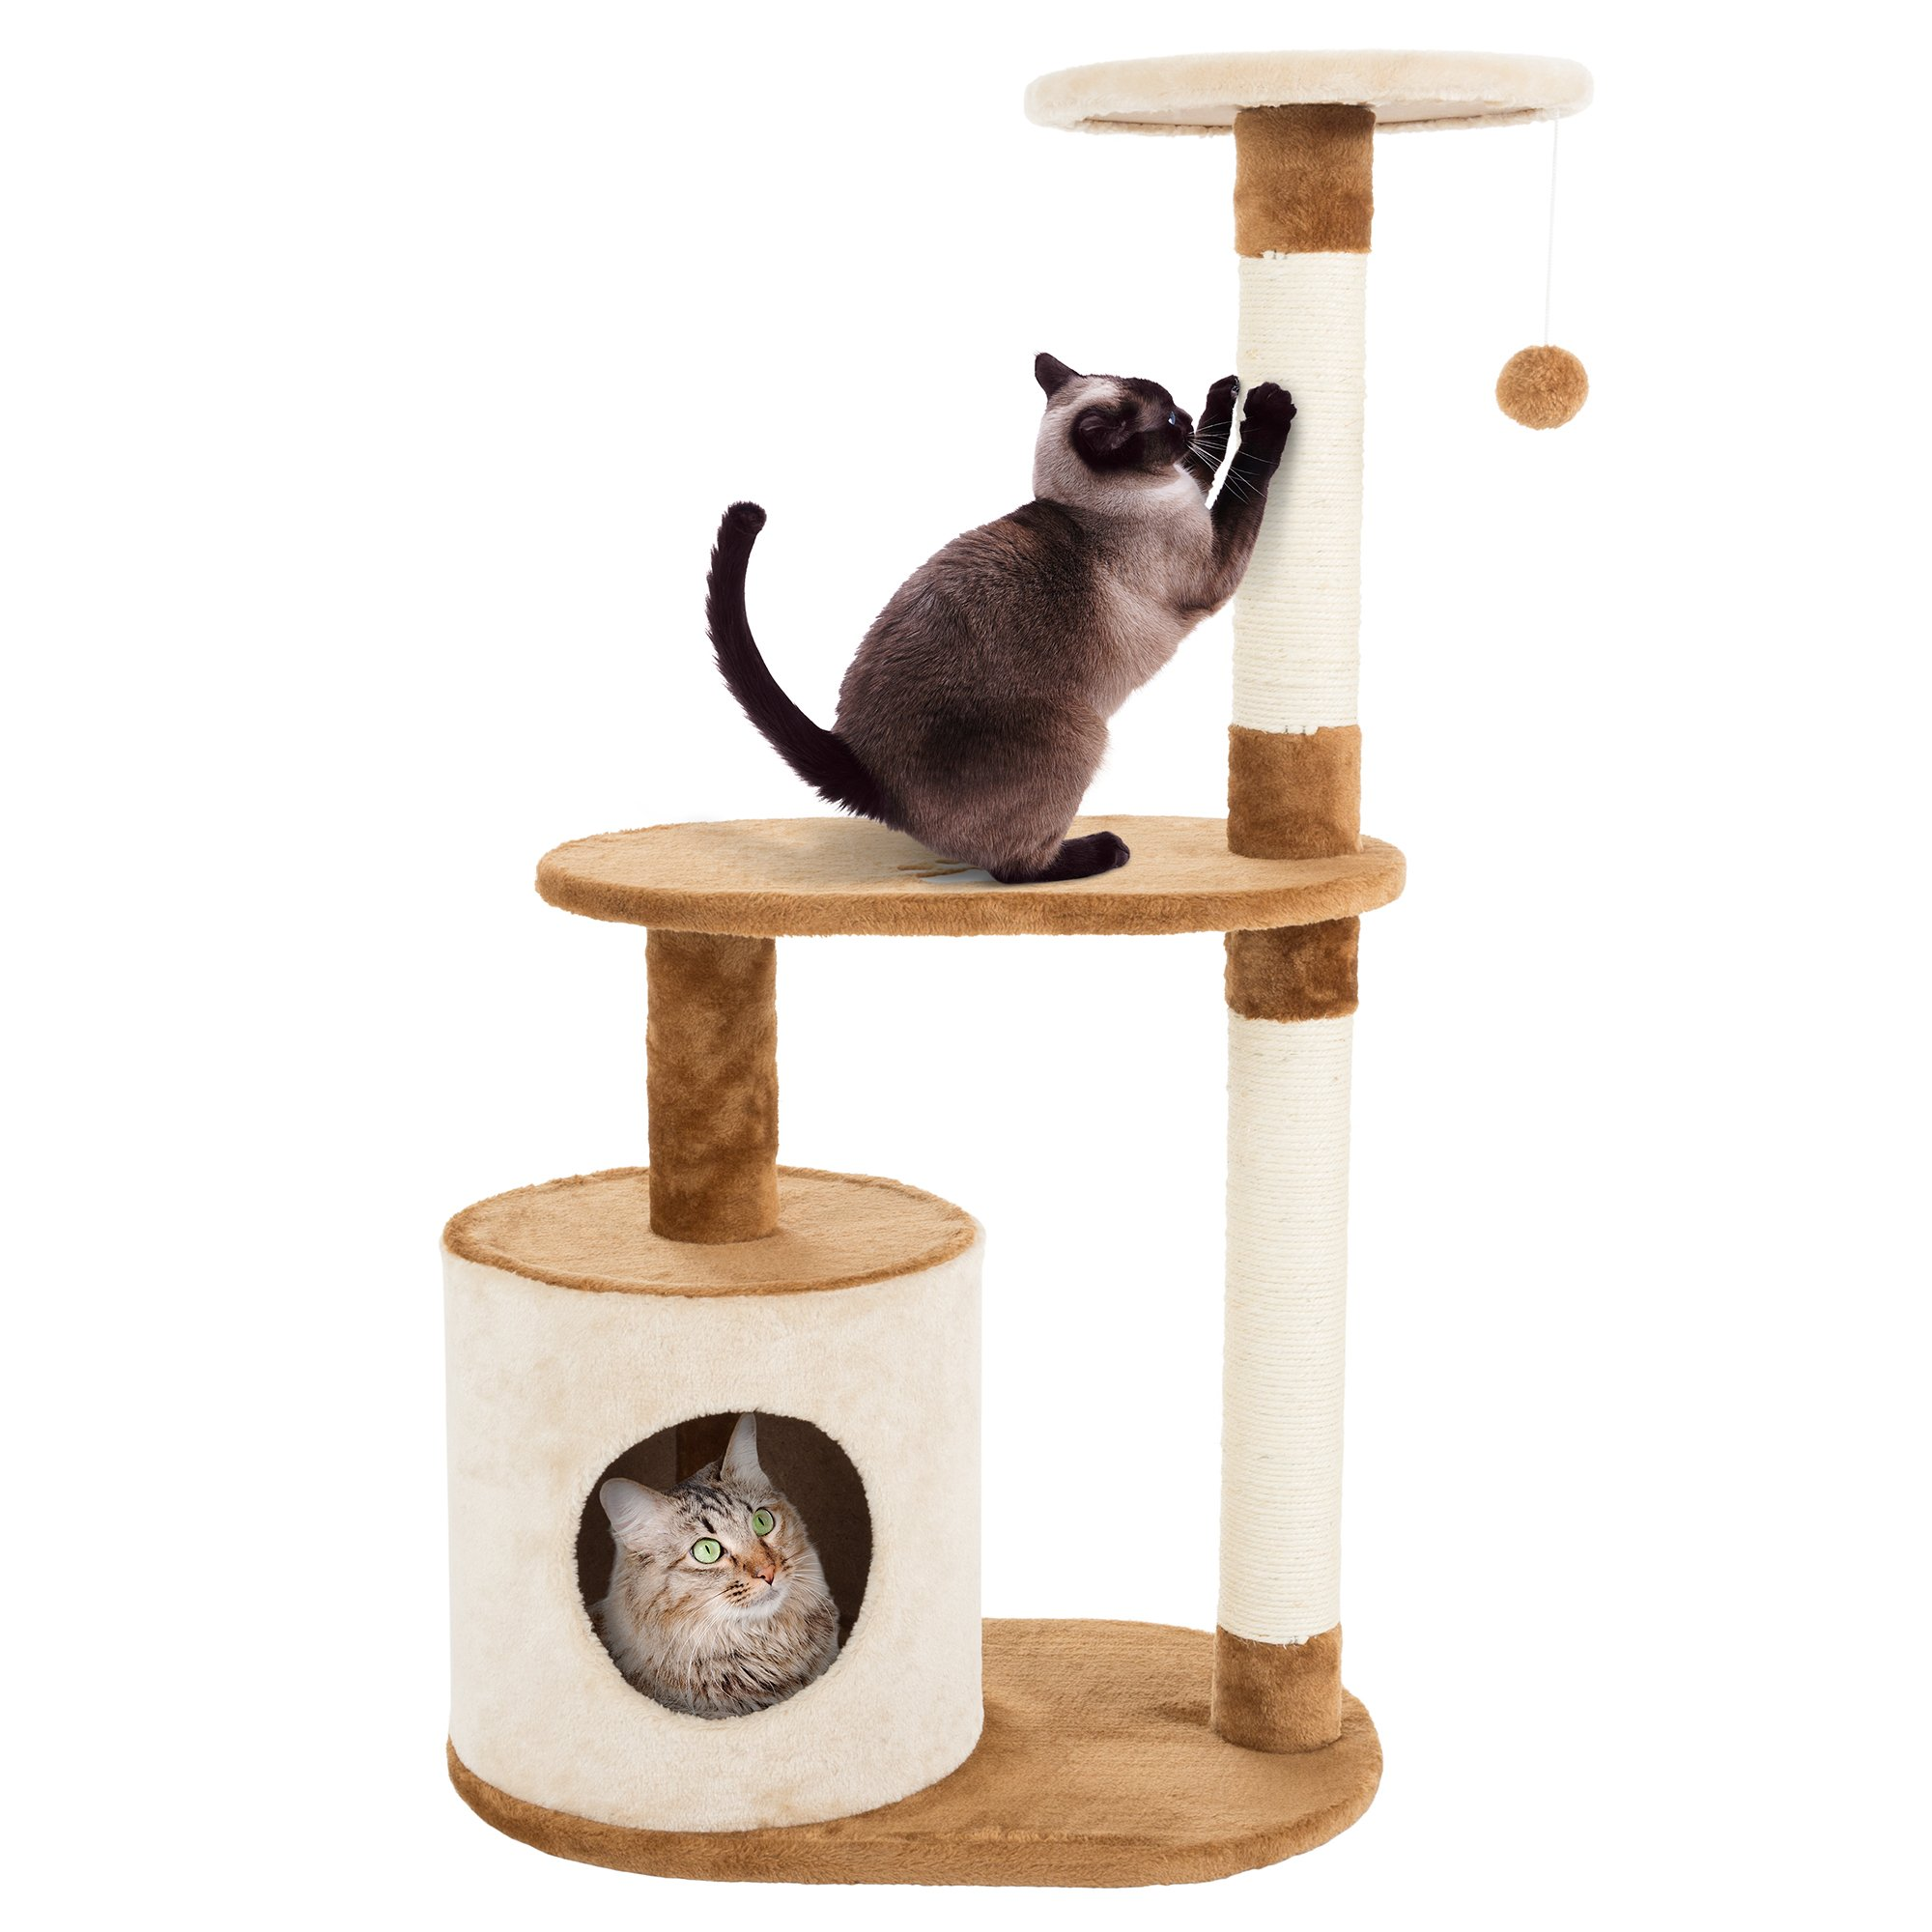 PETMAKER Cat Tree Condo 3 Tier with Condo and Scratching Posts, 37.5'', Brown and Tan